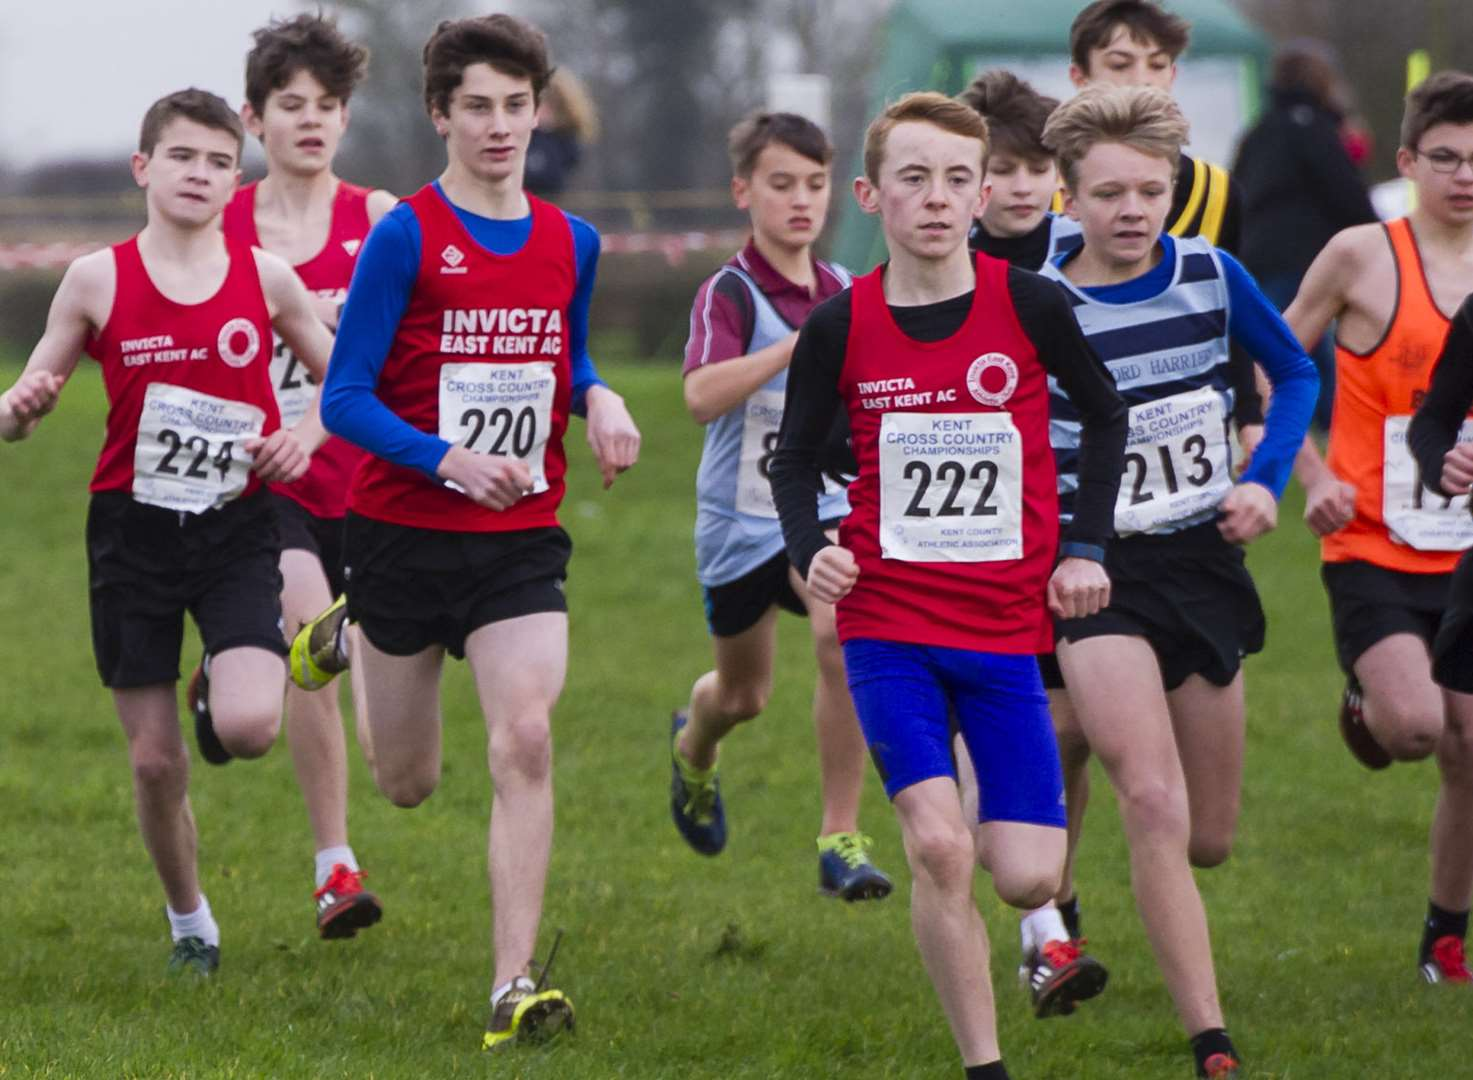 Kent County Cross-Country Championships - in pictures